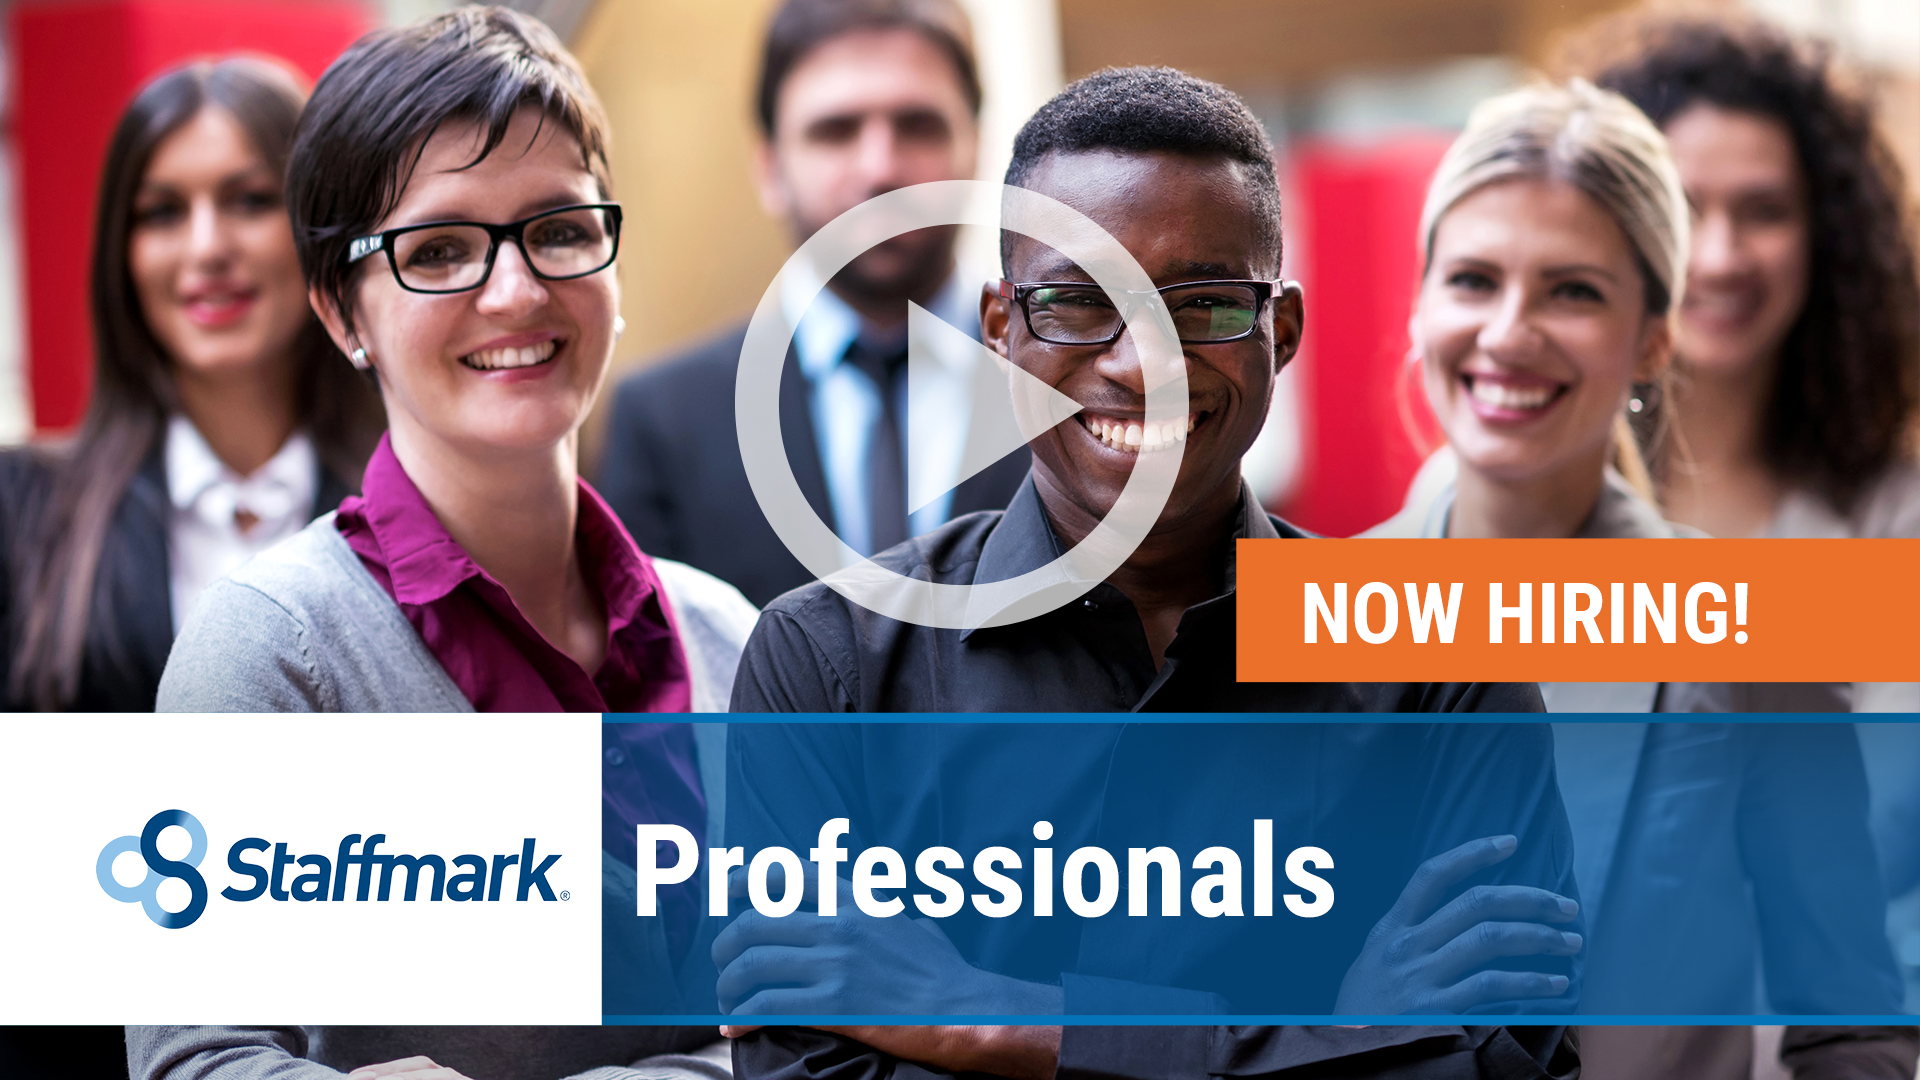 Watch our careers video for available job opening Professionals in Nationwide